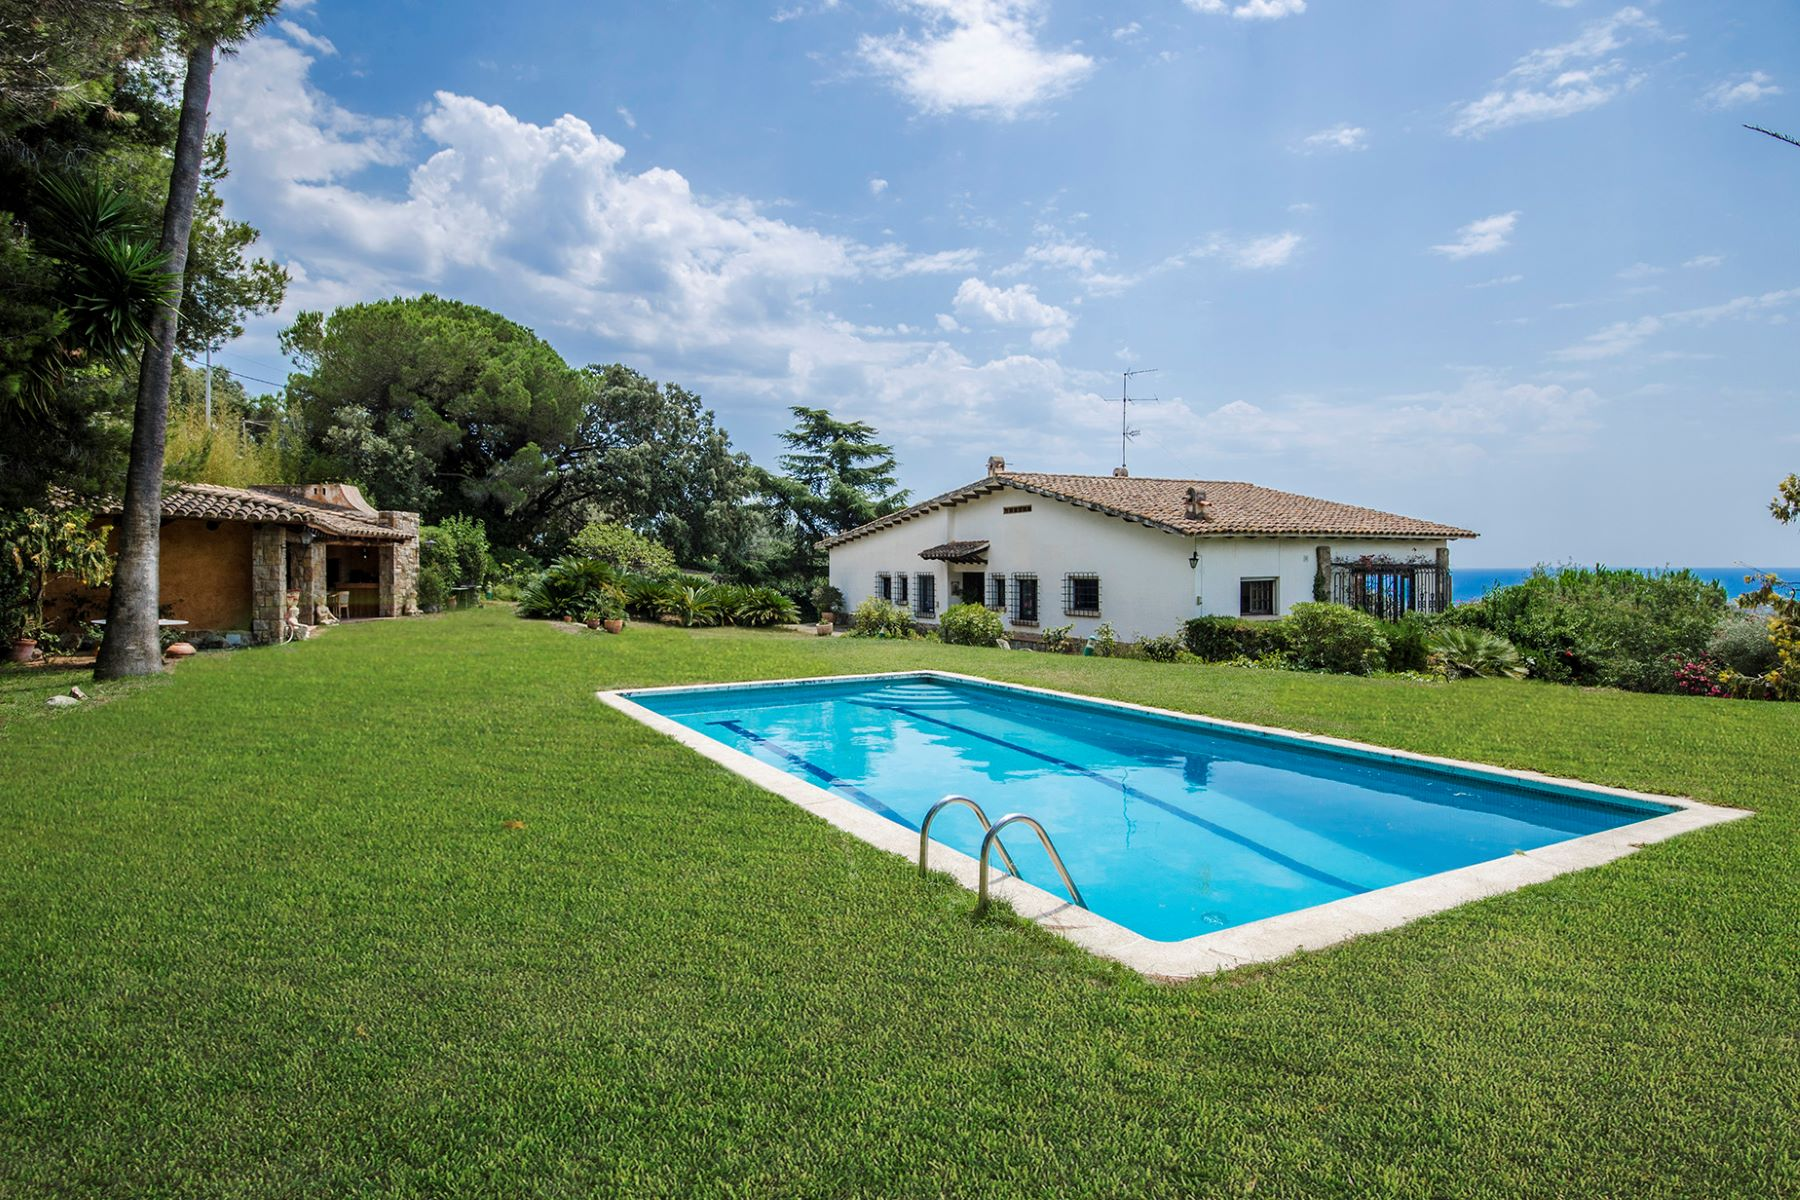 Single Family Home for Sale at Paradise of peace and privacy in Cabrera de Mar Cabrils, Barcelona, 08348 Spain